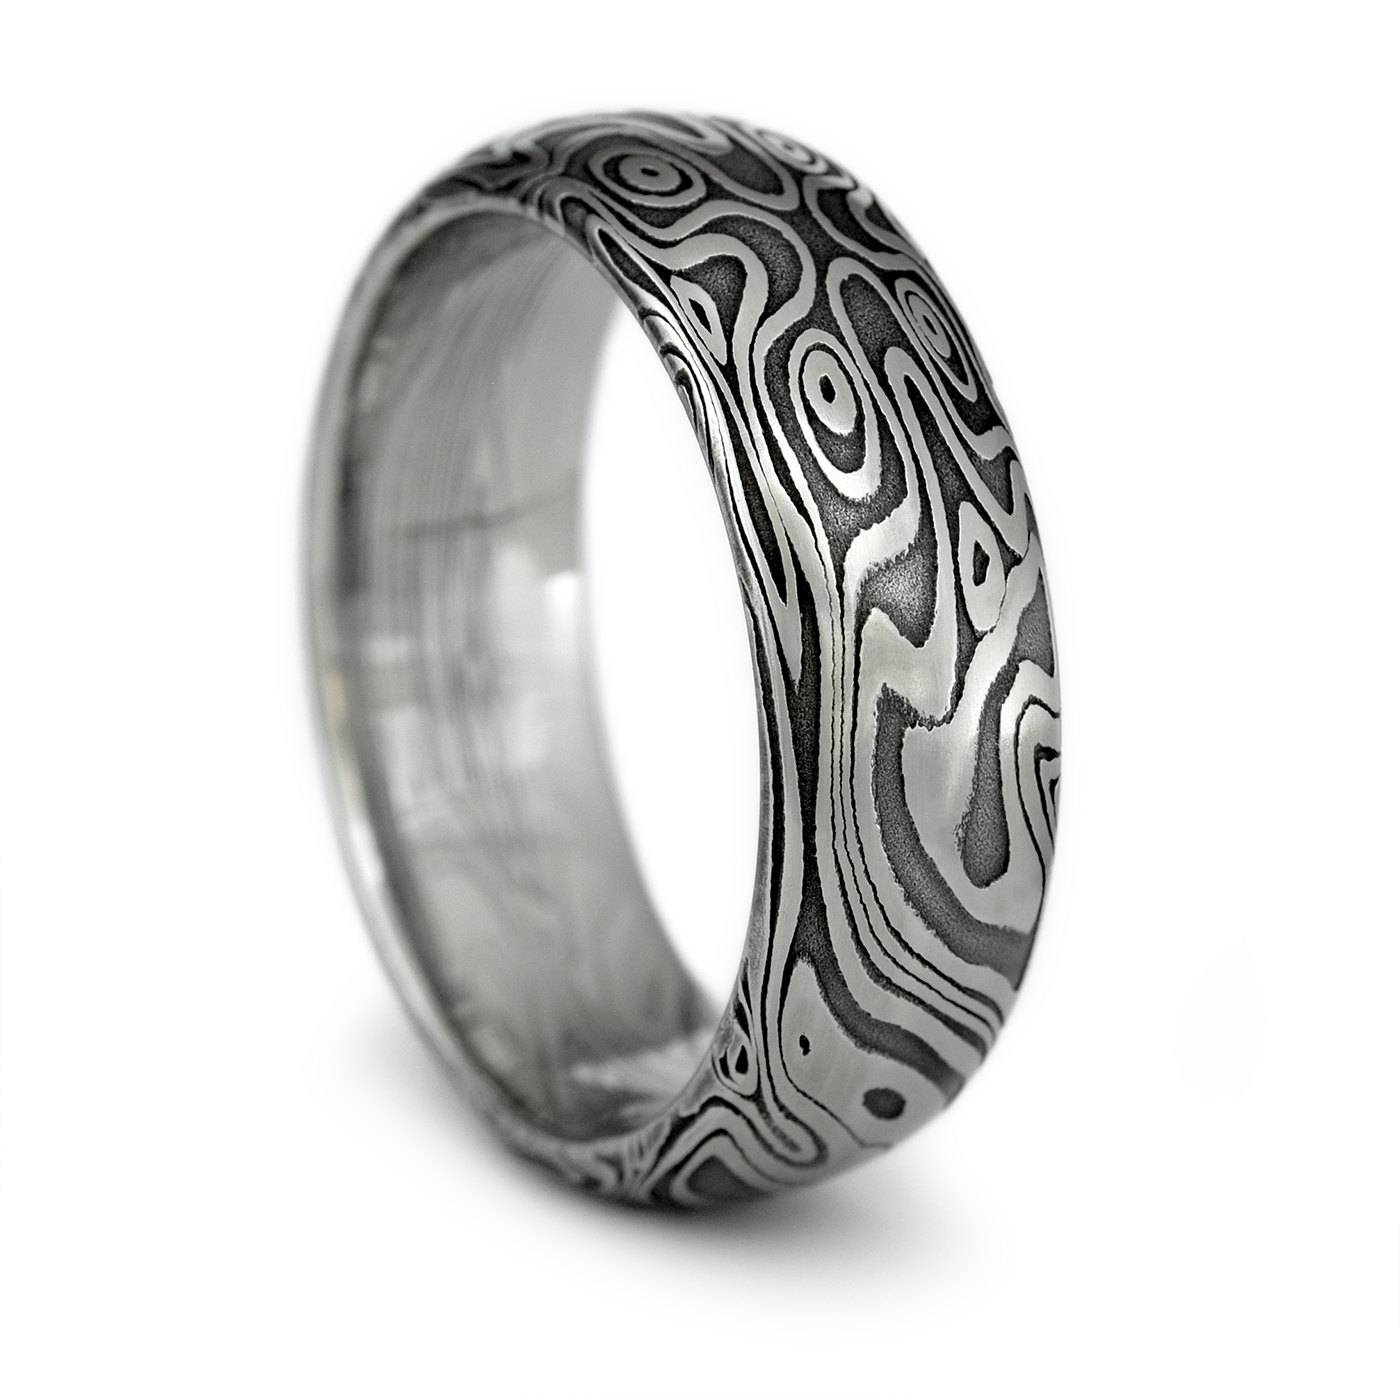 Wood Grain Ring Damascus Steel Men's Domed Wedding Band With Regard To Men's Damascus Wedding Bands (View 15 of 15)